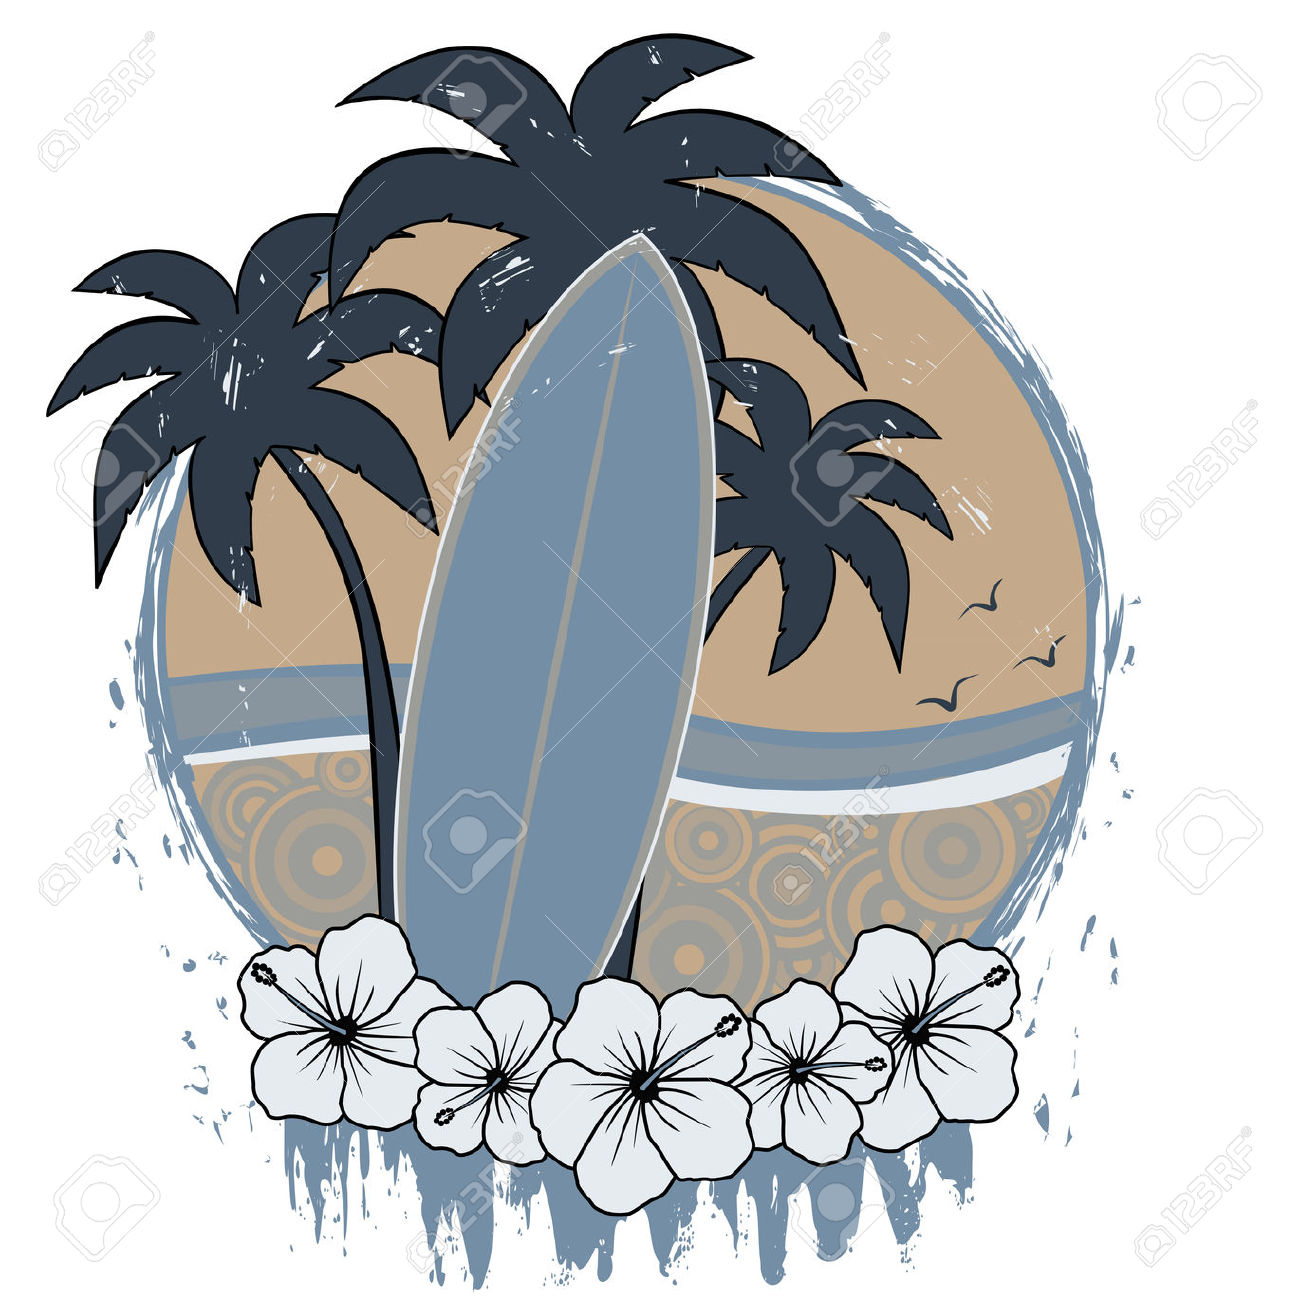 Palm tree surfboard clipart png Surfboard With Palm Trees And Hibiscus Flowers With Retro Beach ... png